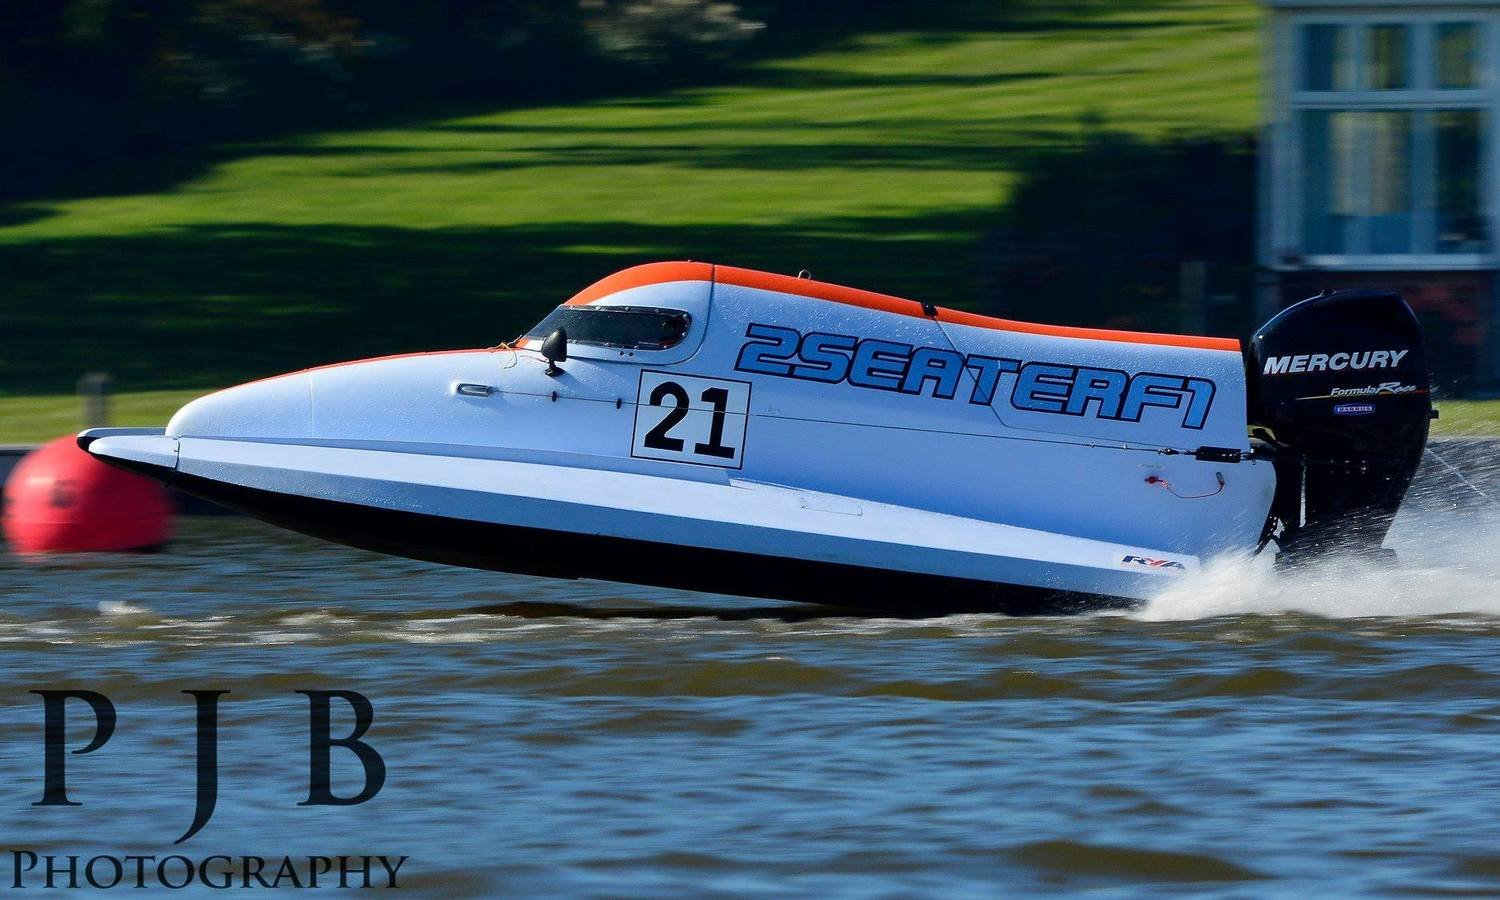 F4 Powerboat Driving Experience, Wyboston Lakes 23rd September 2018